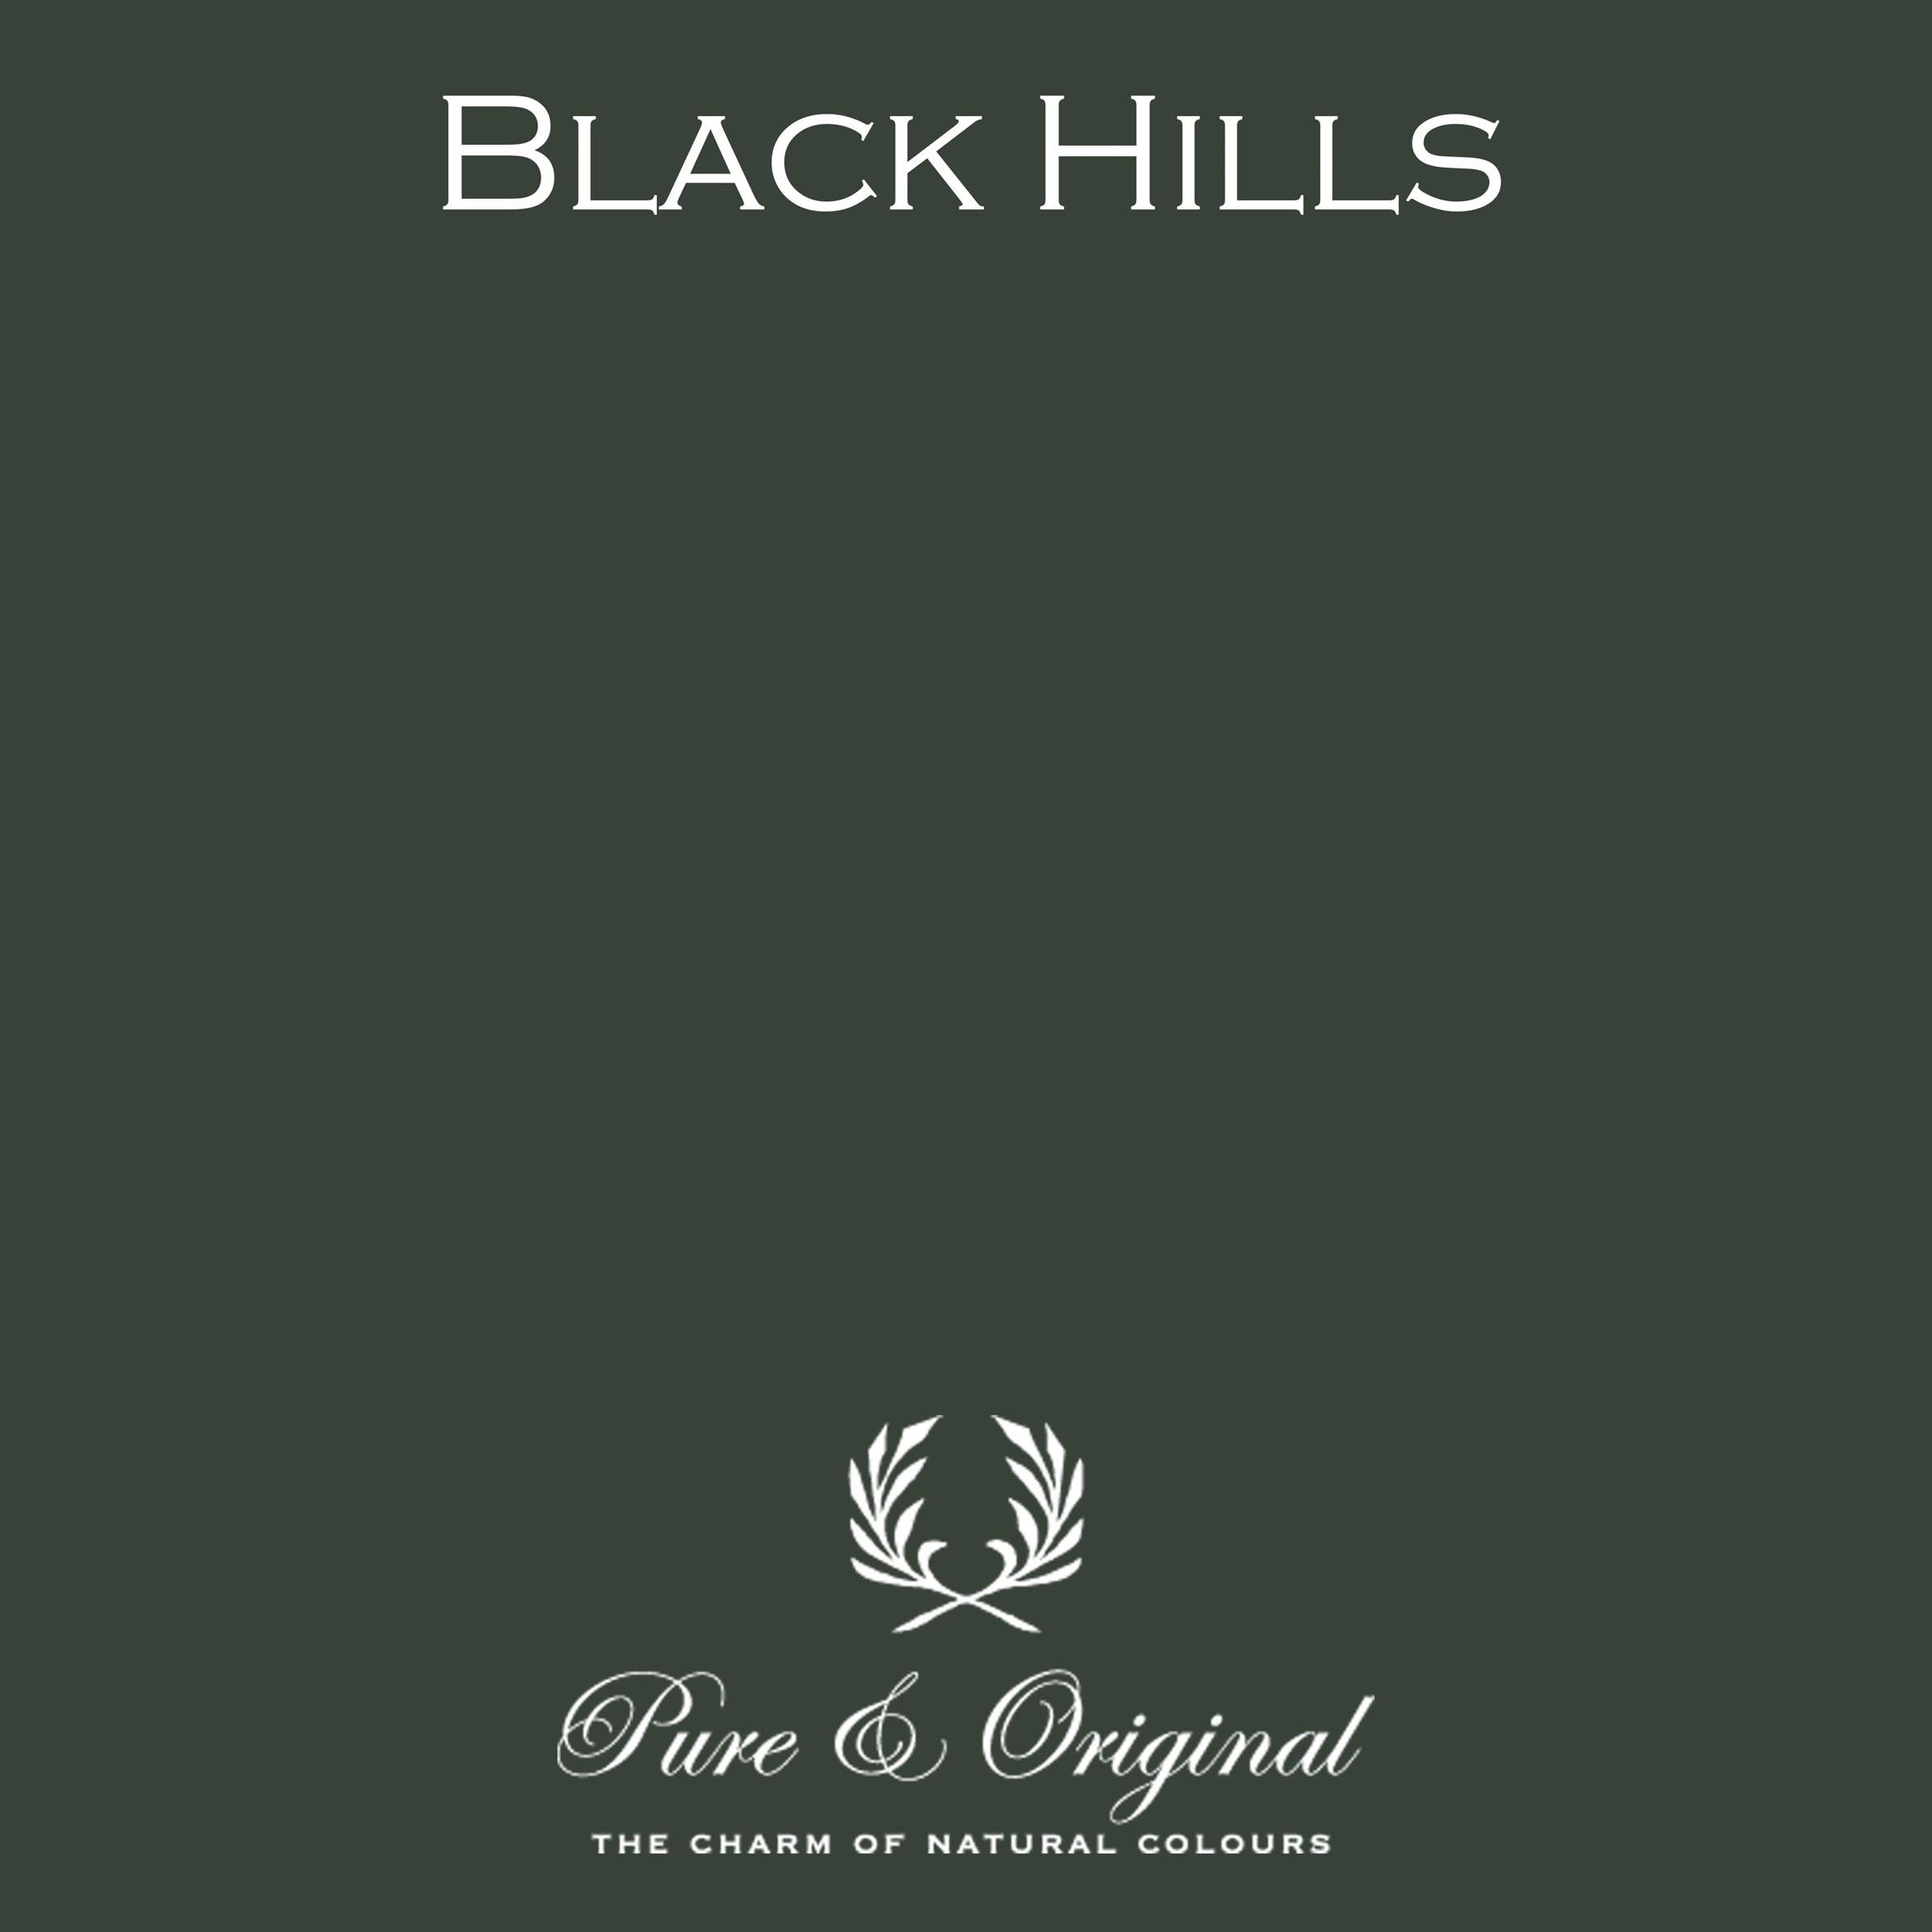 Pure & Original Black Hills